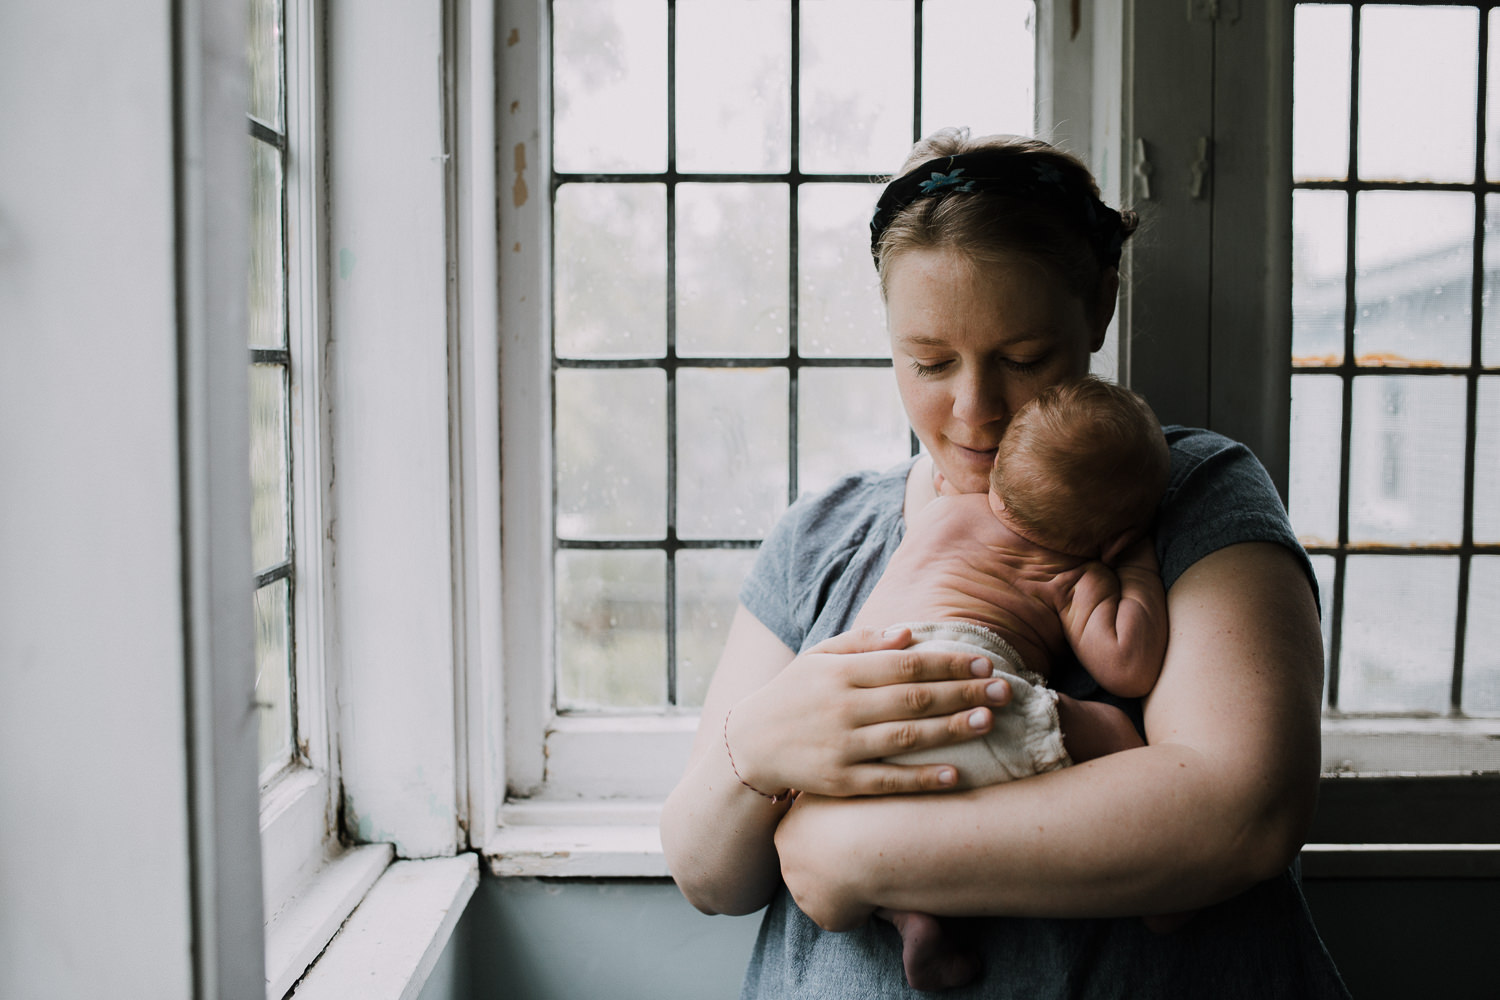 mom standing and cuddling 10 day old baby boy on chest - Barrie Lifestyle Family Photos